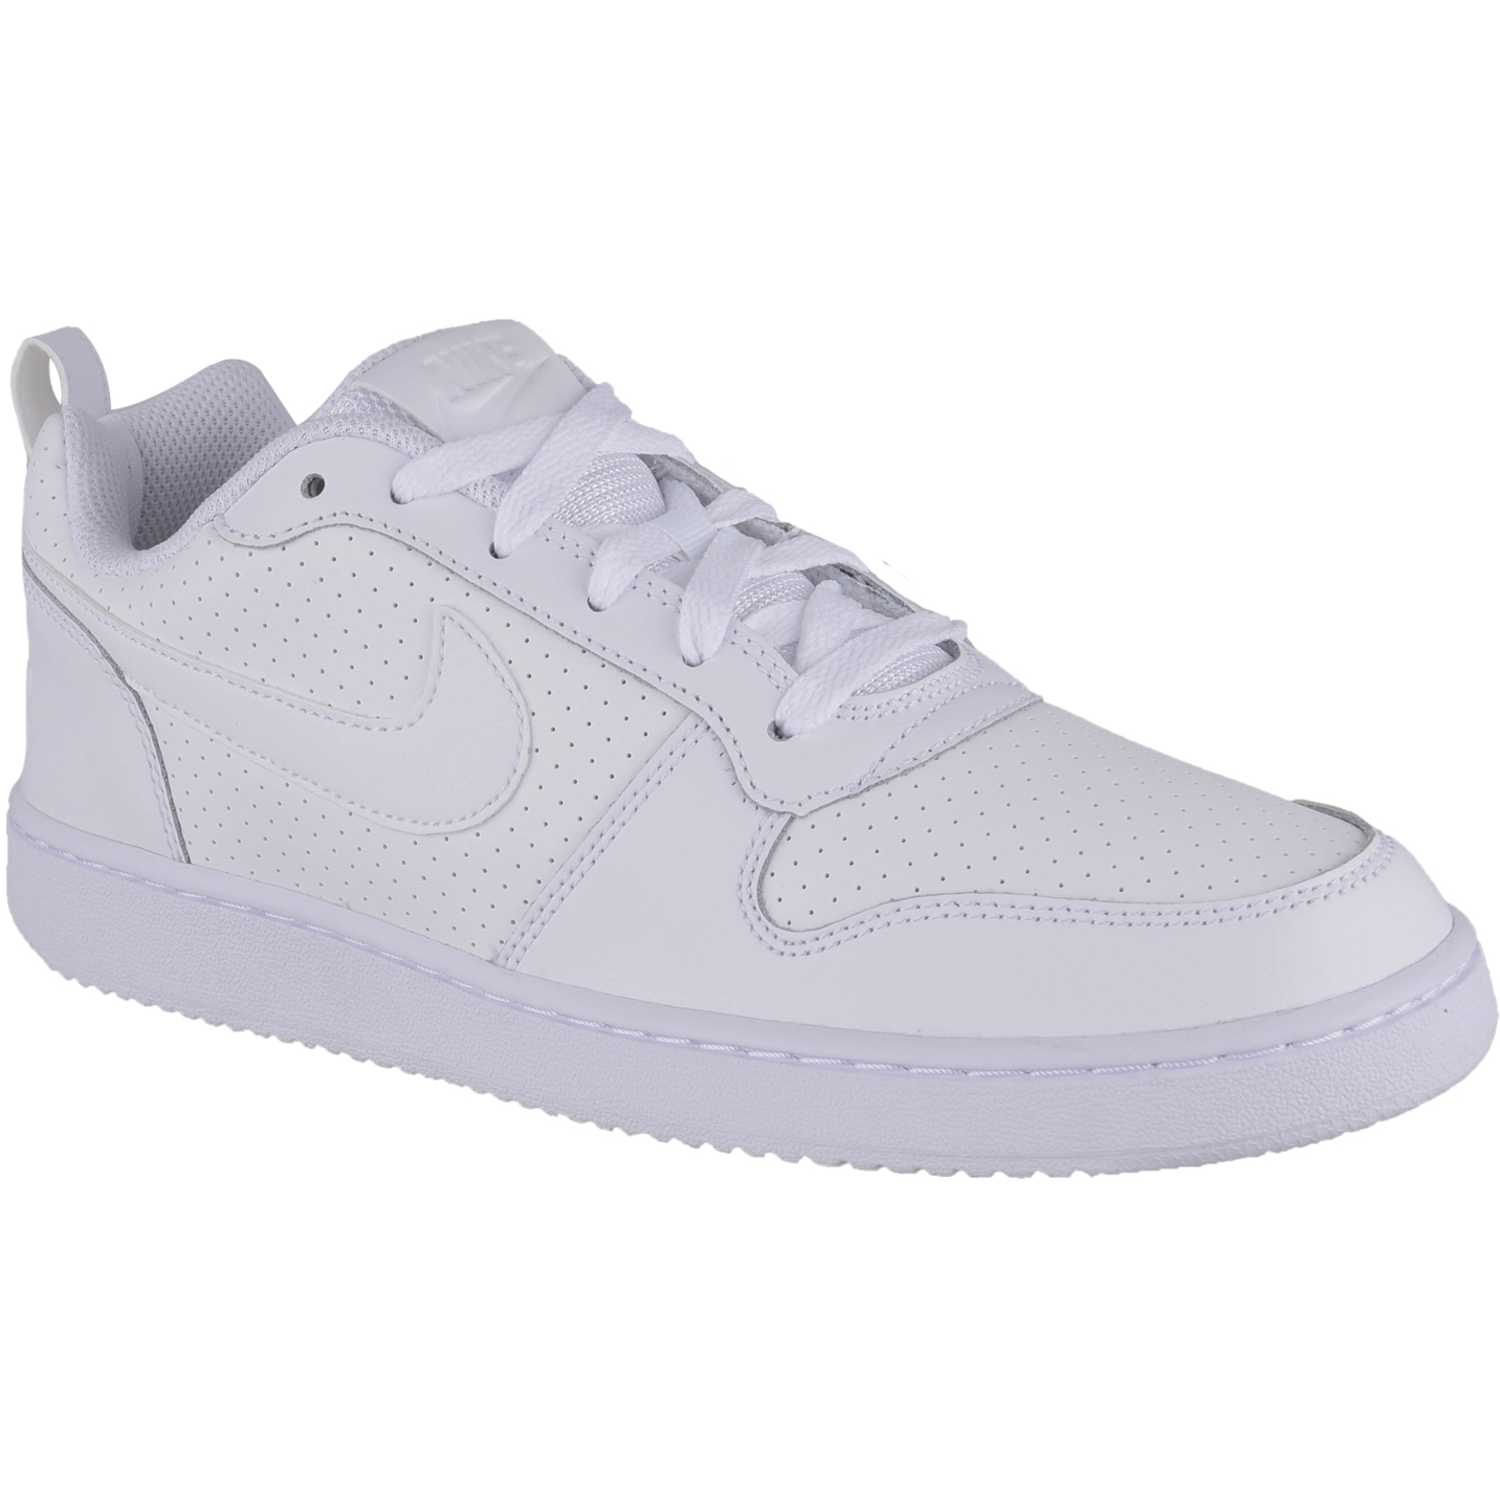 low cost f133d 4d6f9 Zapatilla de Hombre Nike Bl bl court borough low